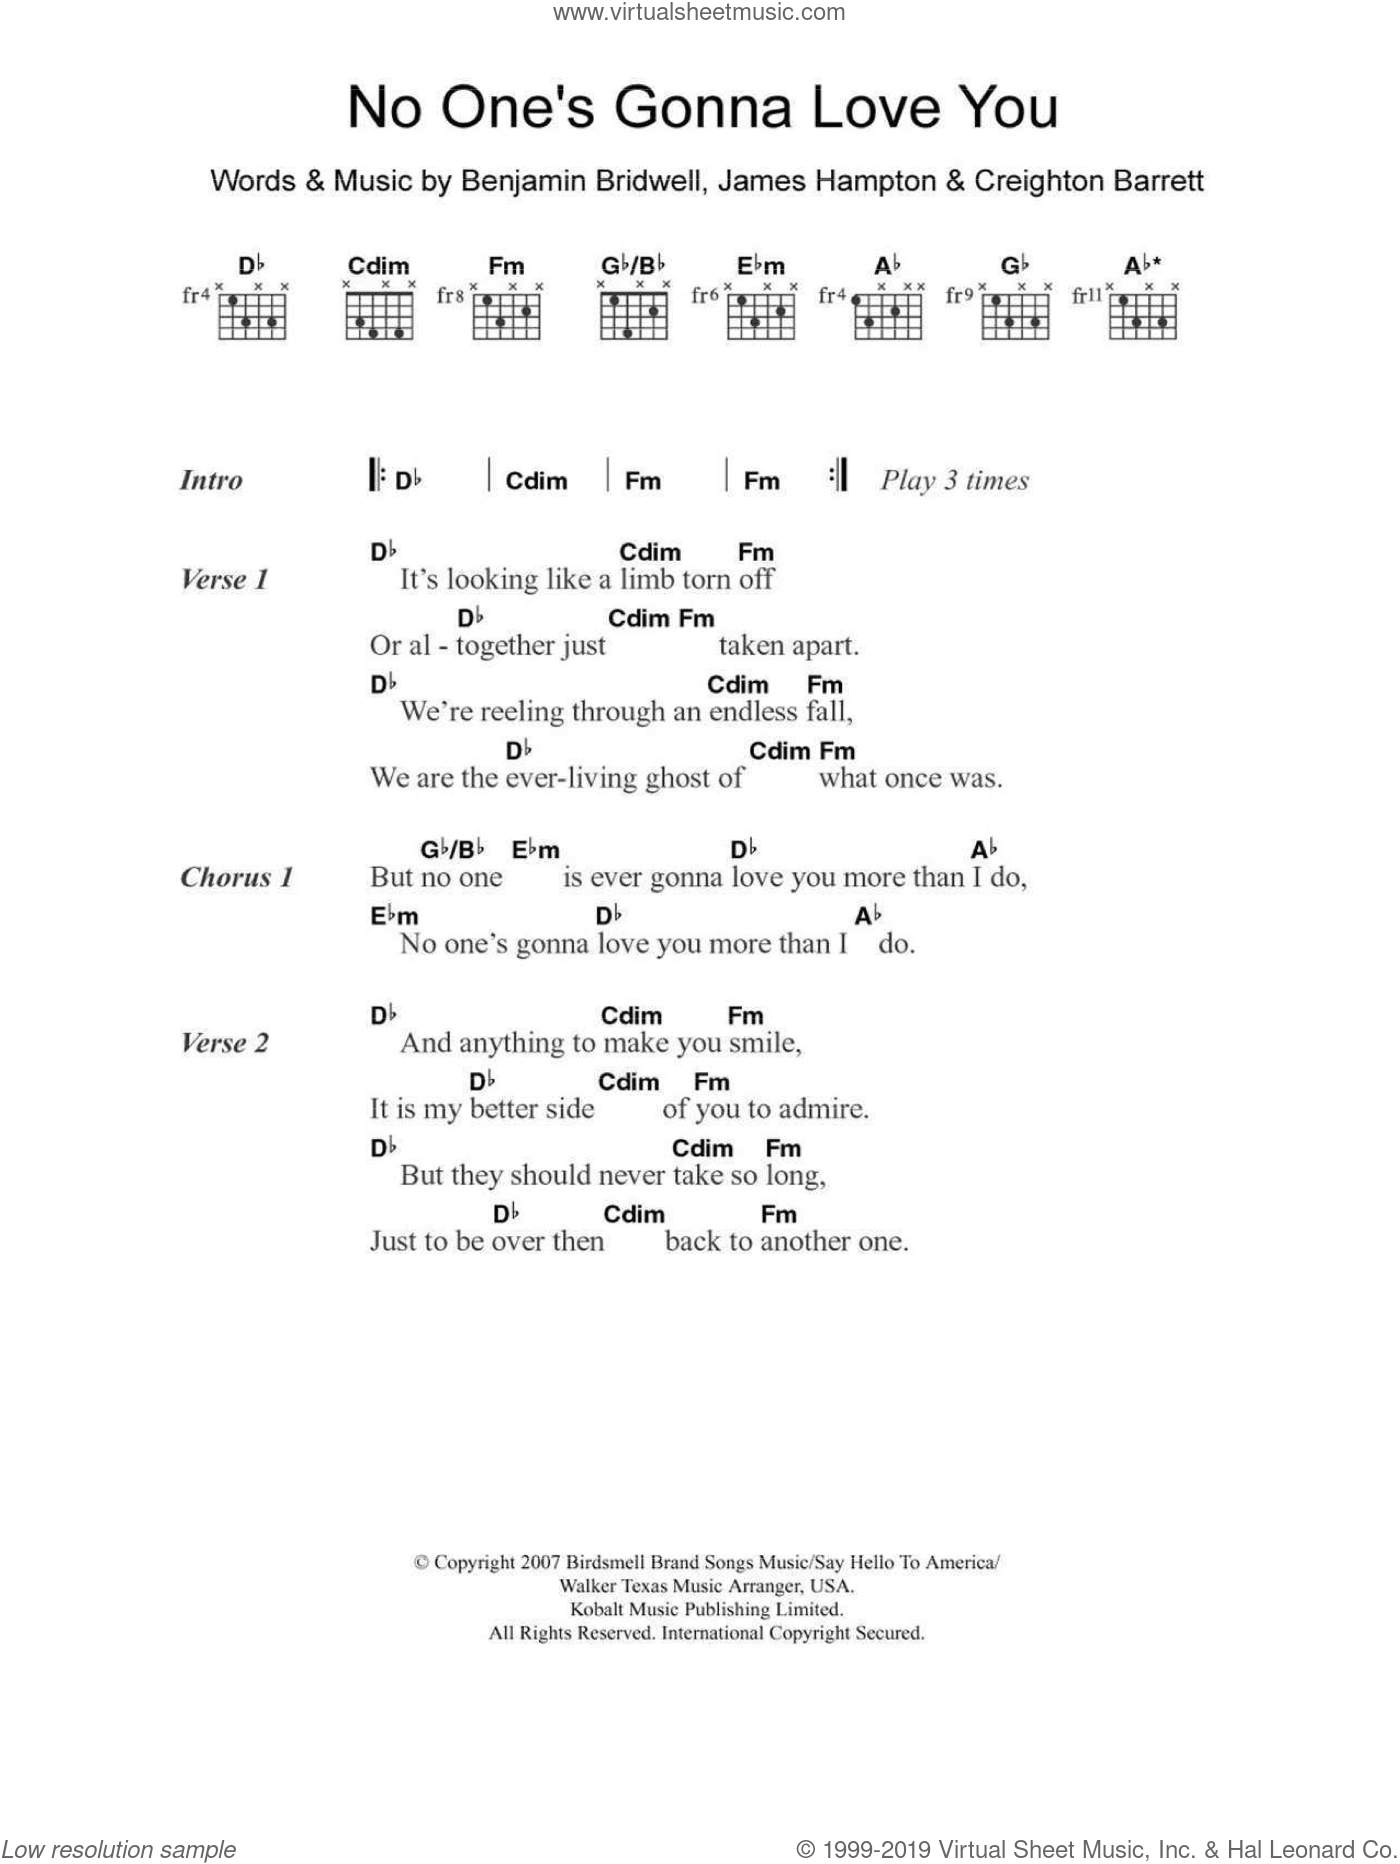 No One's Gonna Love You sheet music for guitar (chords) by James Hampton and Benjamin Bridwell. Score Image Preview.